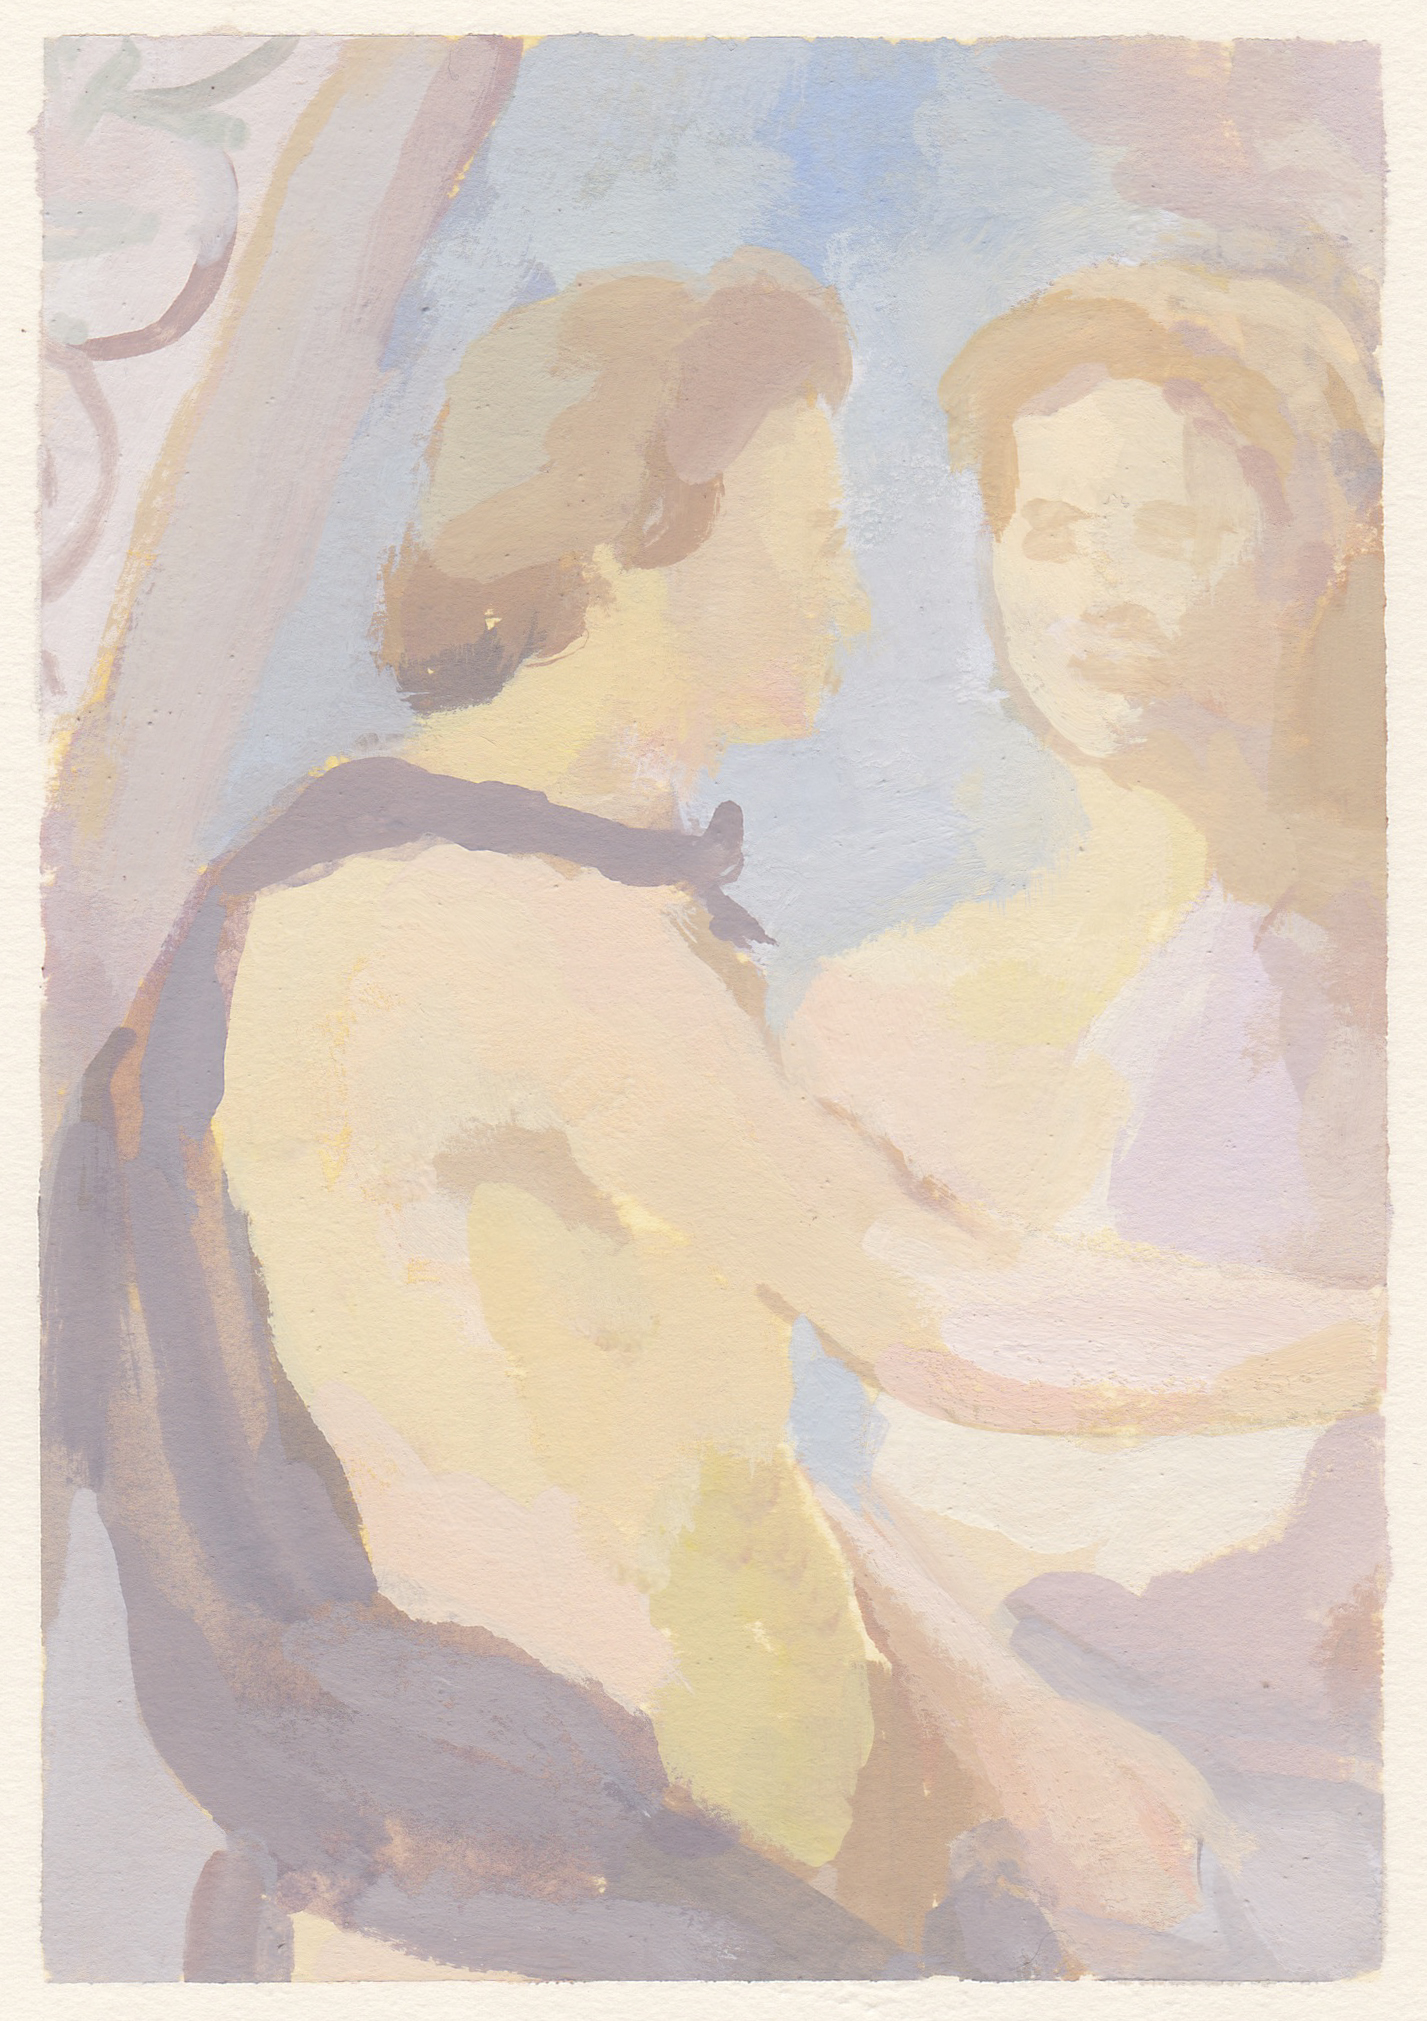 """lovers fresco  gouache on paper 6.5 x 4.5"""" 2018  private collection in Irvine, CA  purchase prints"""